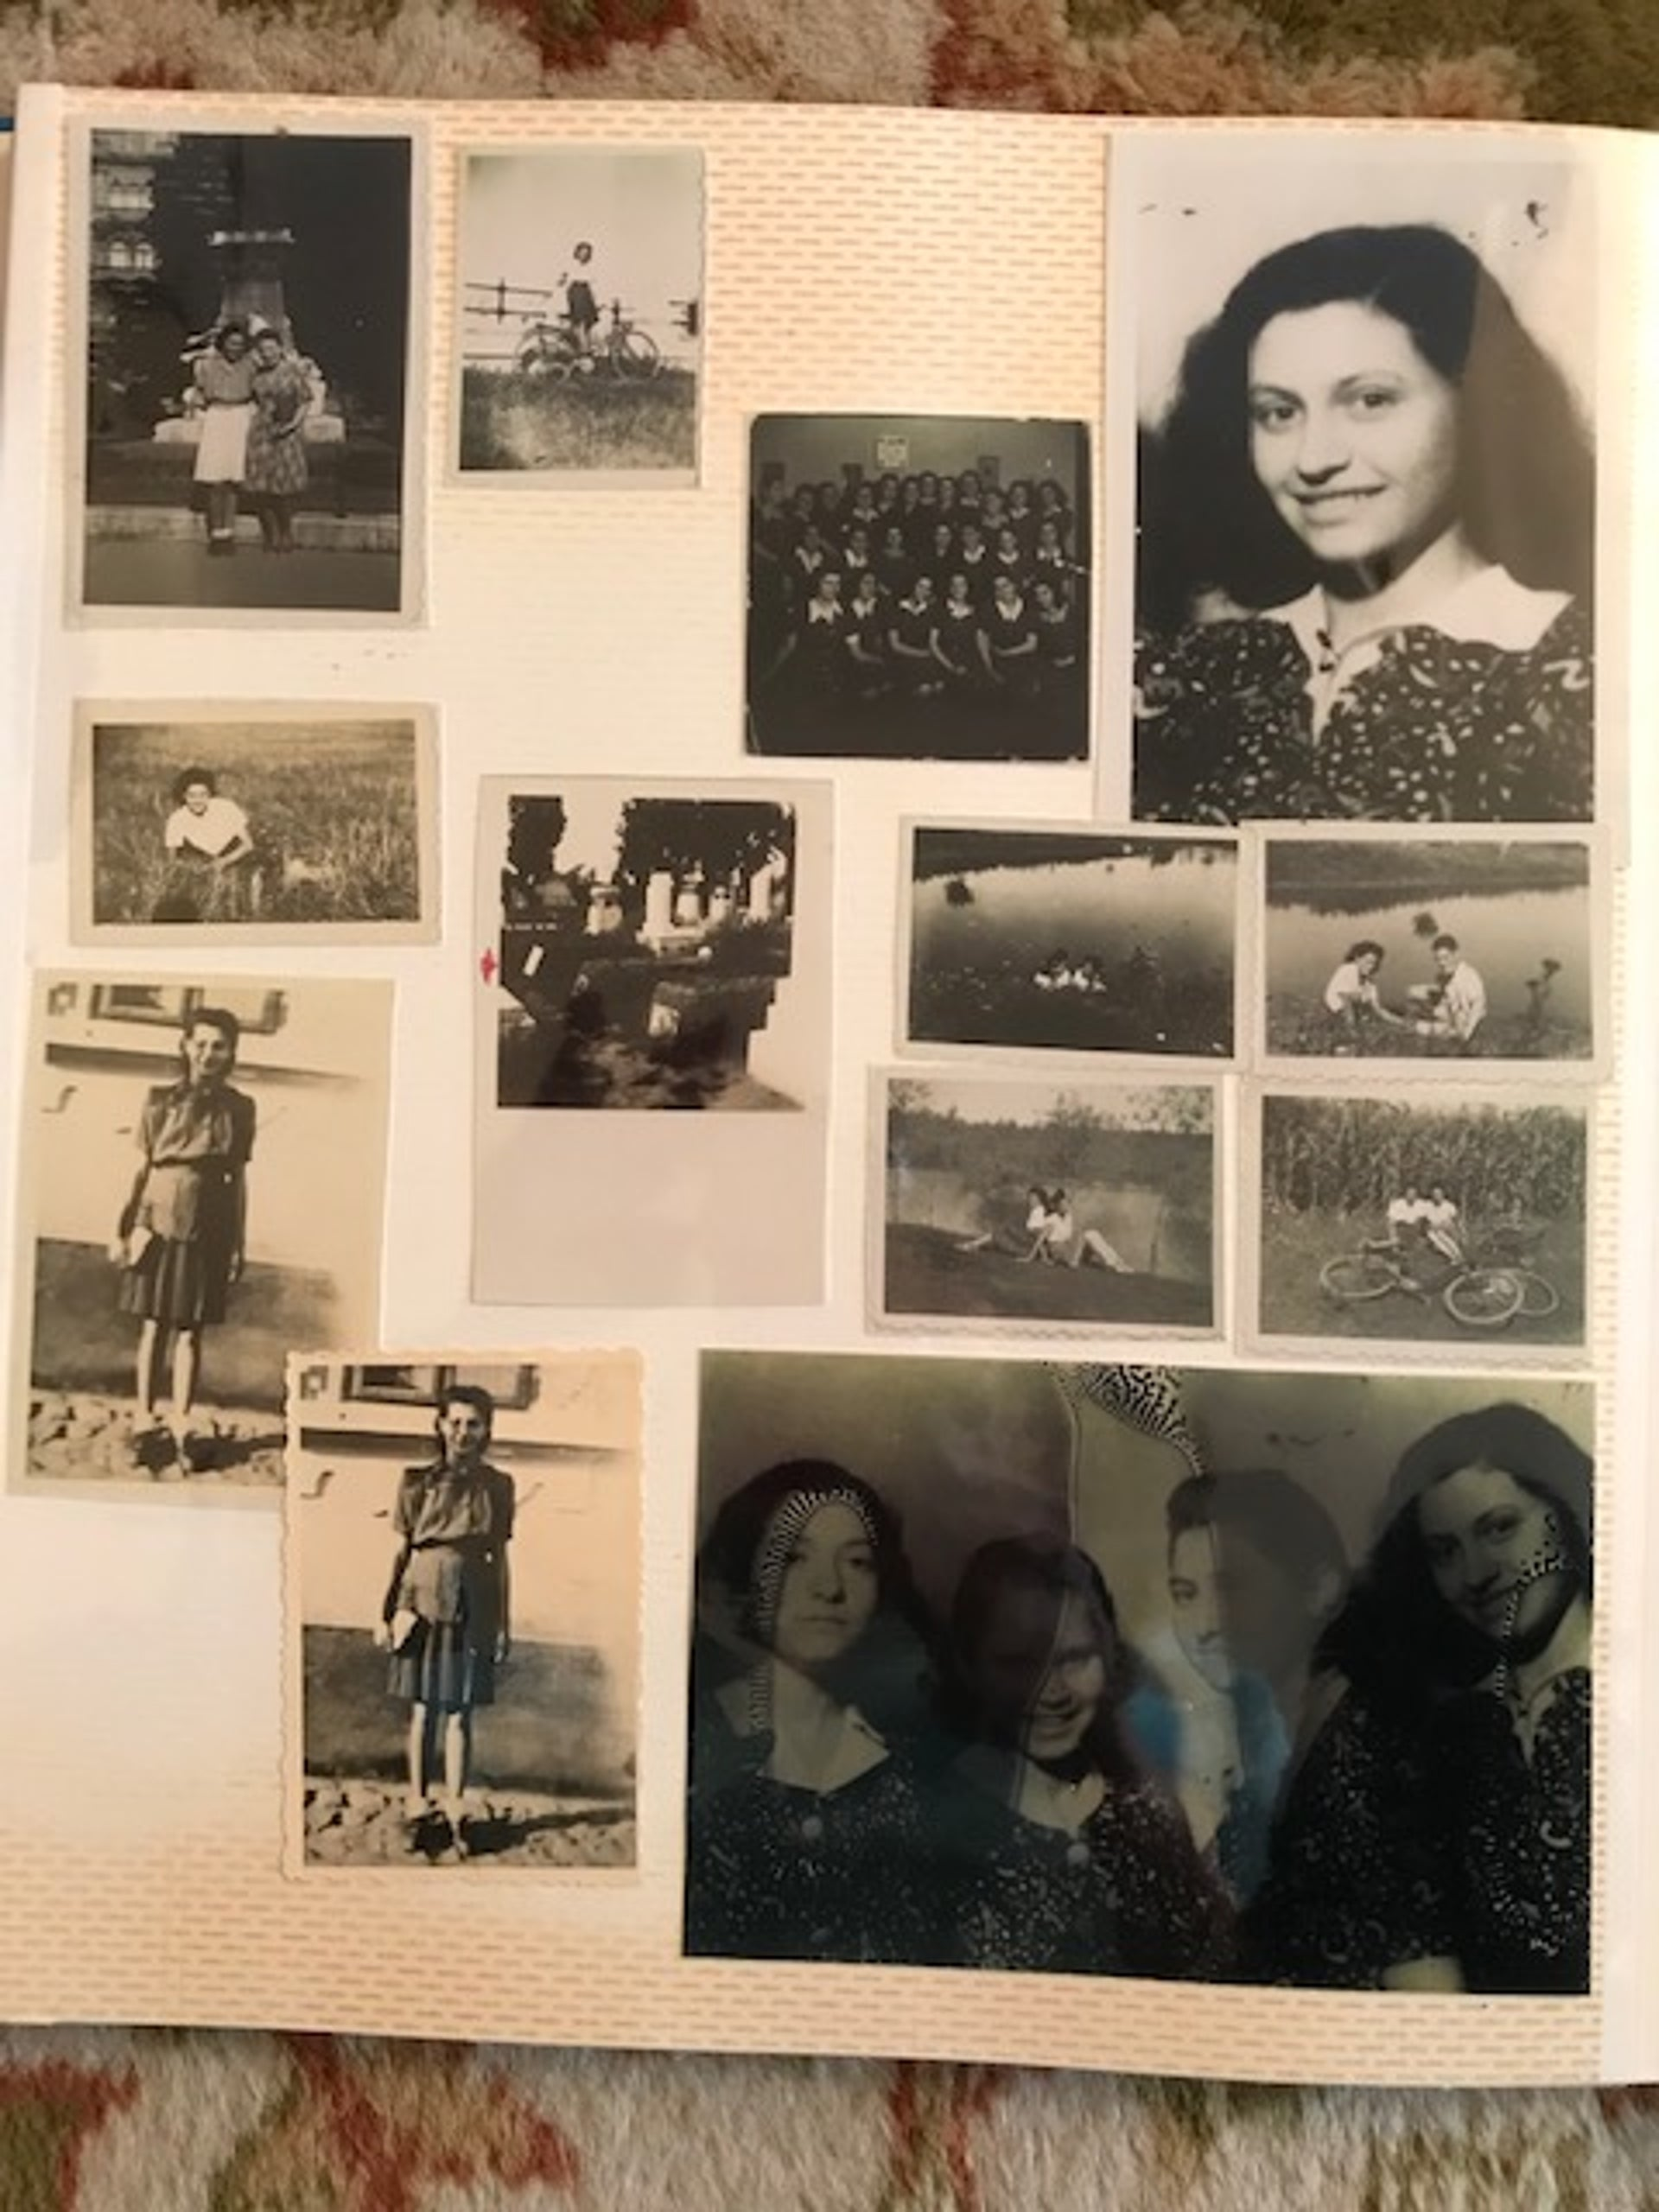 A family album containing images of Judit Ornstein. Paul Ornstein kept the photos in his jacket pocket while in the forced labor battalion.